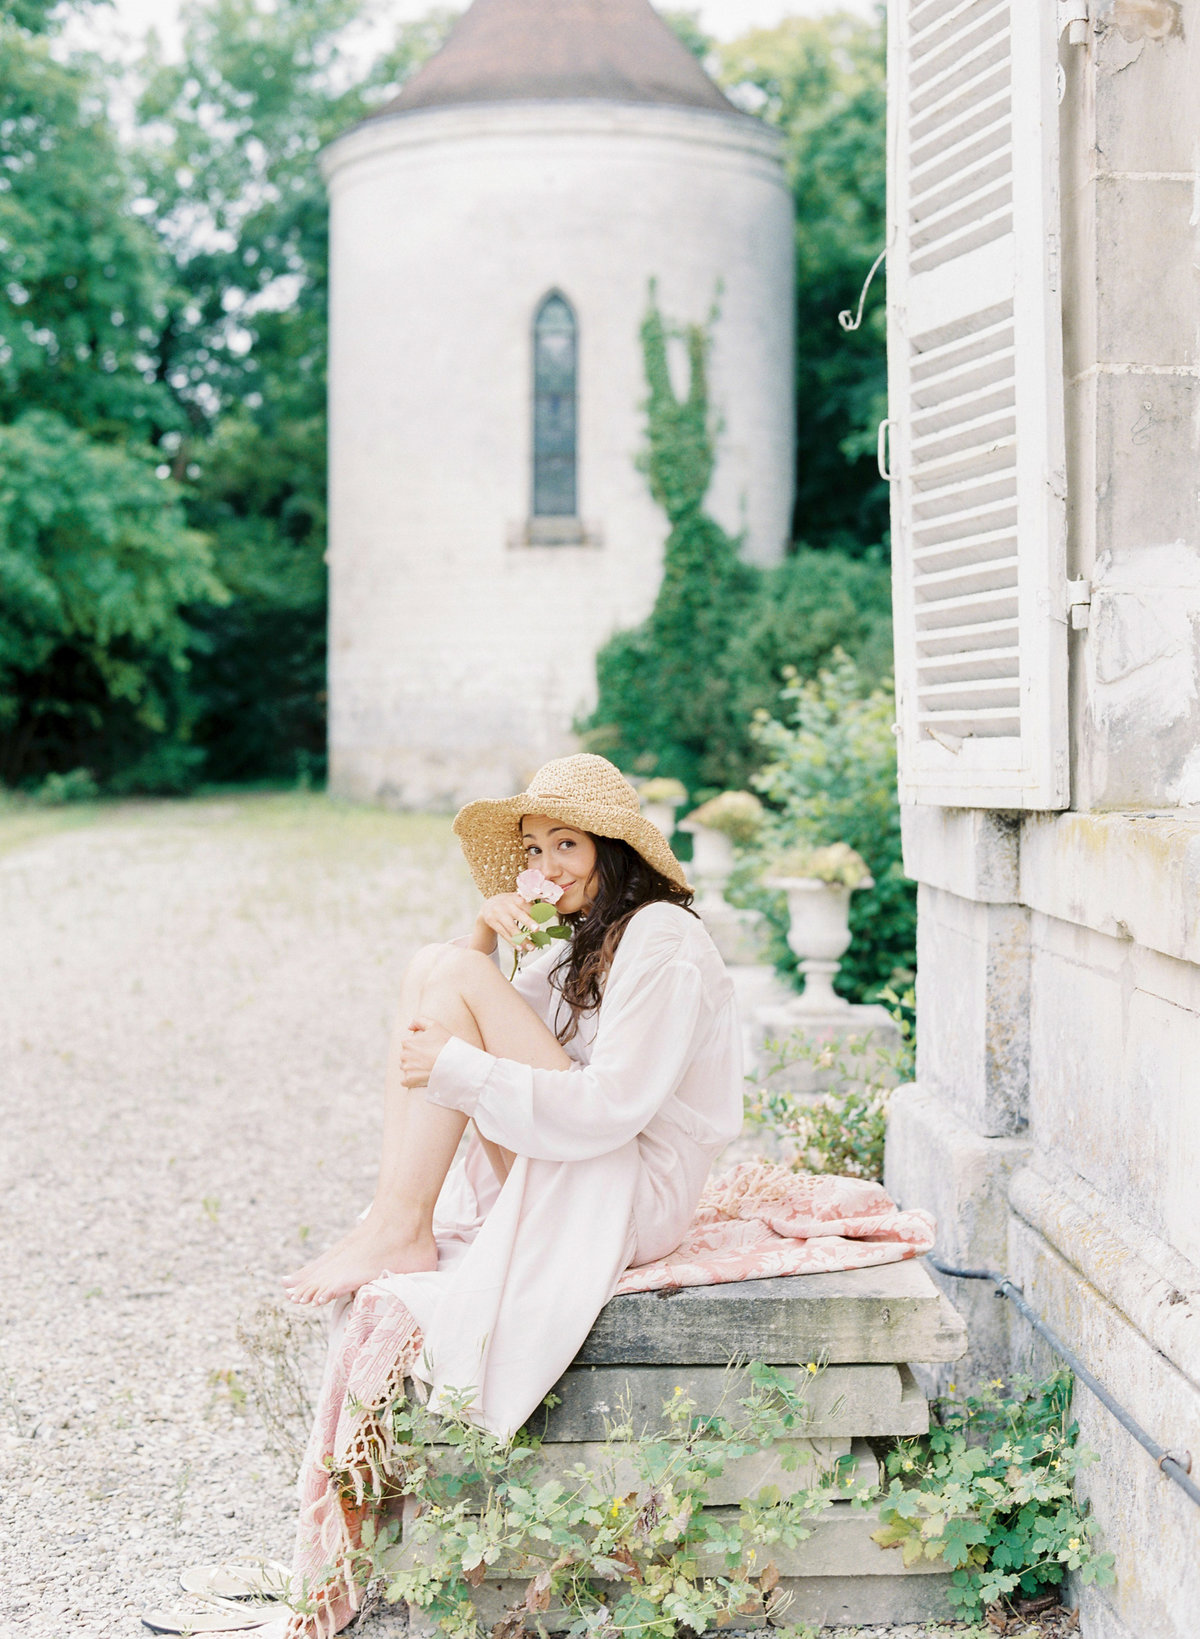 Intimate french champagne chateau wedding amelia soegijono0016